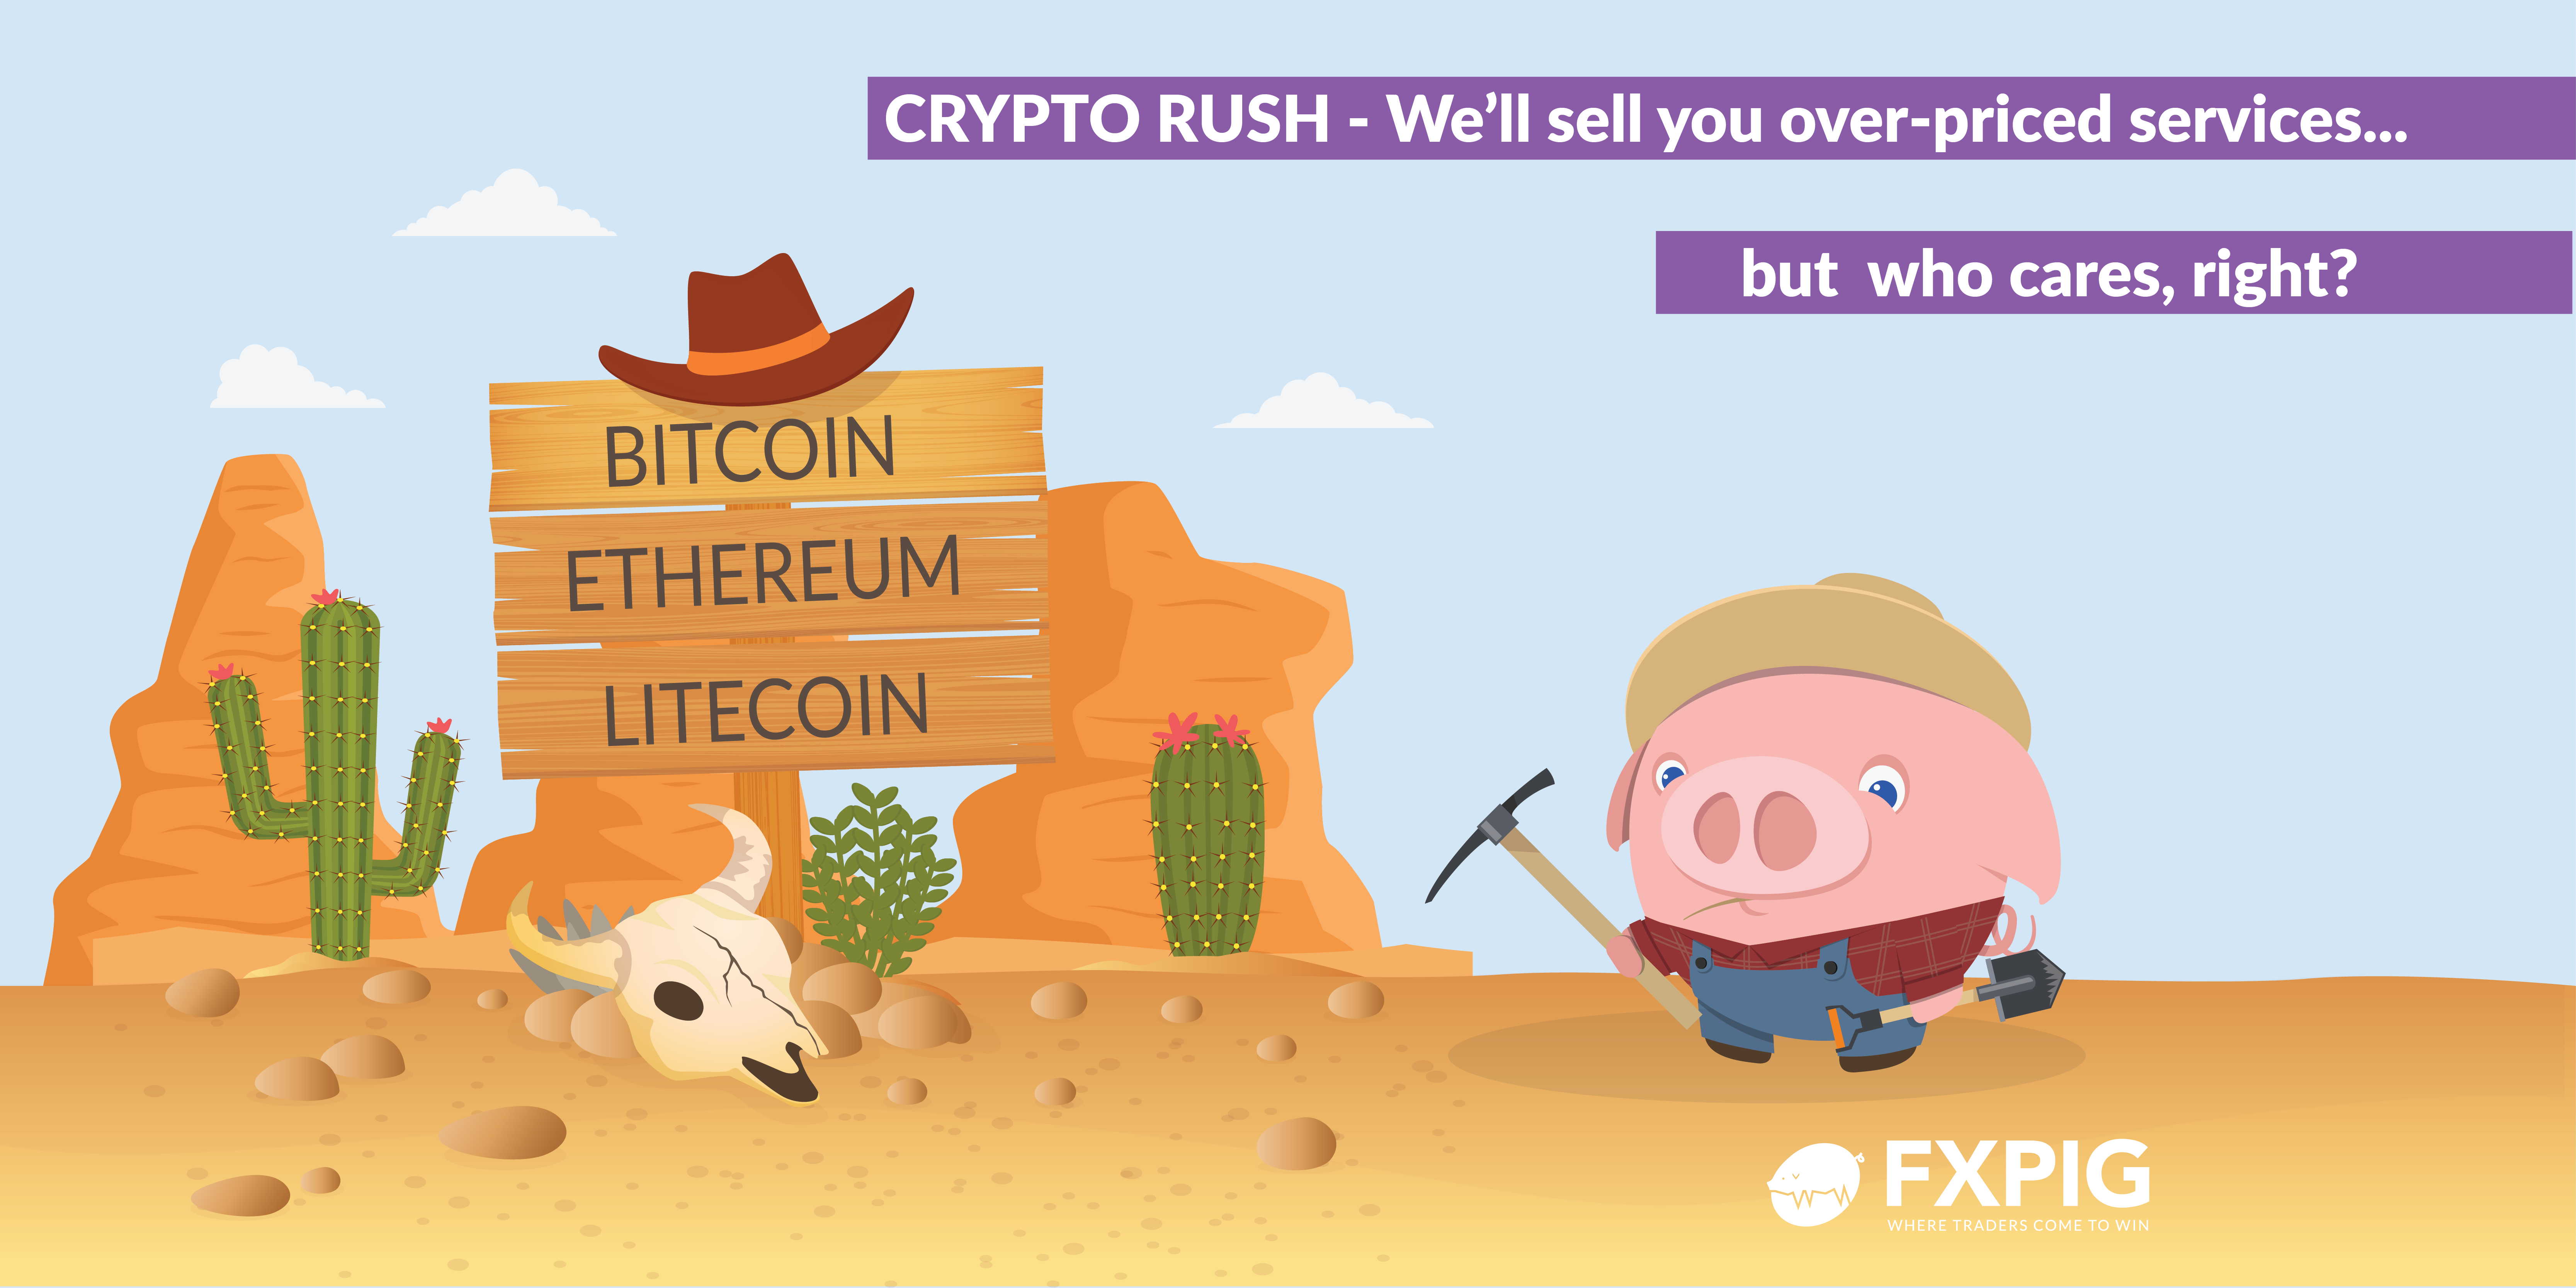 FOREX_Crypto-rush_Mr-Markets_FXPIG